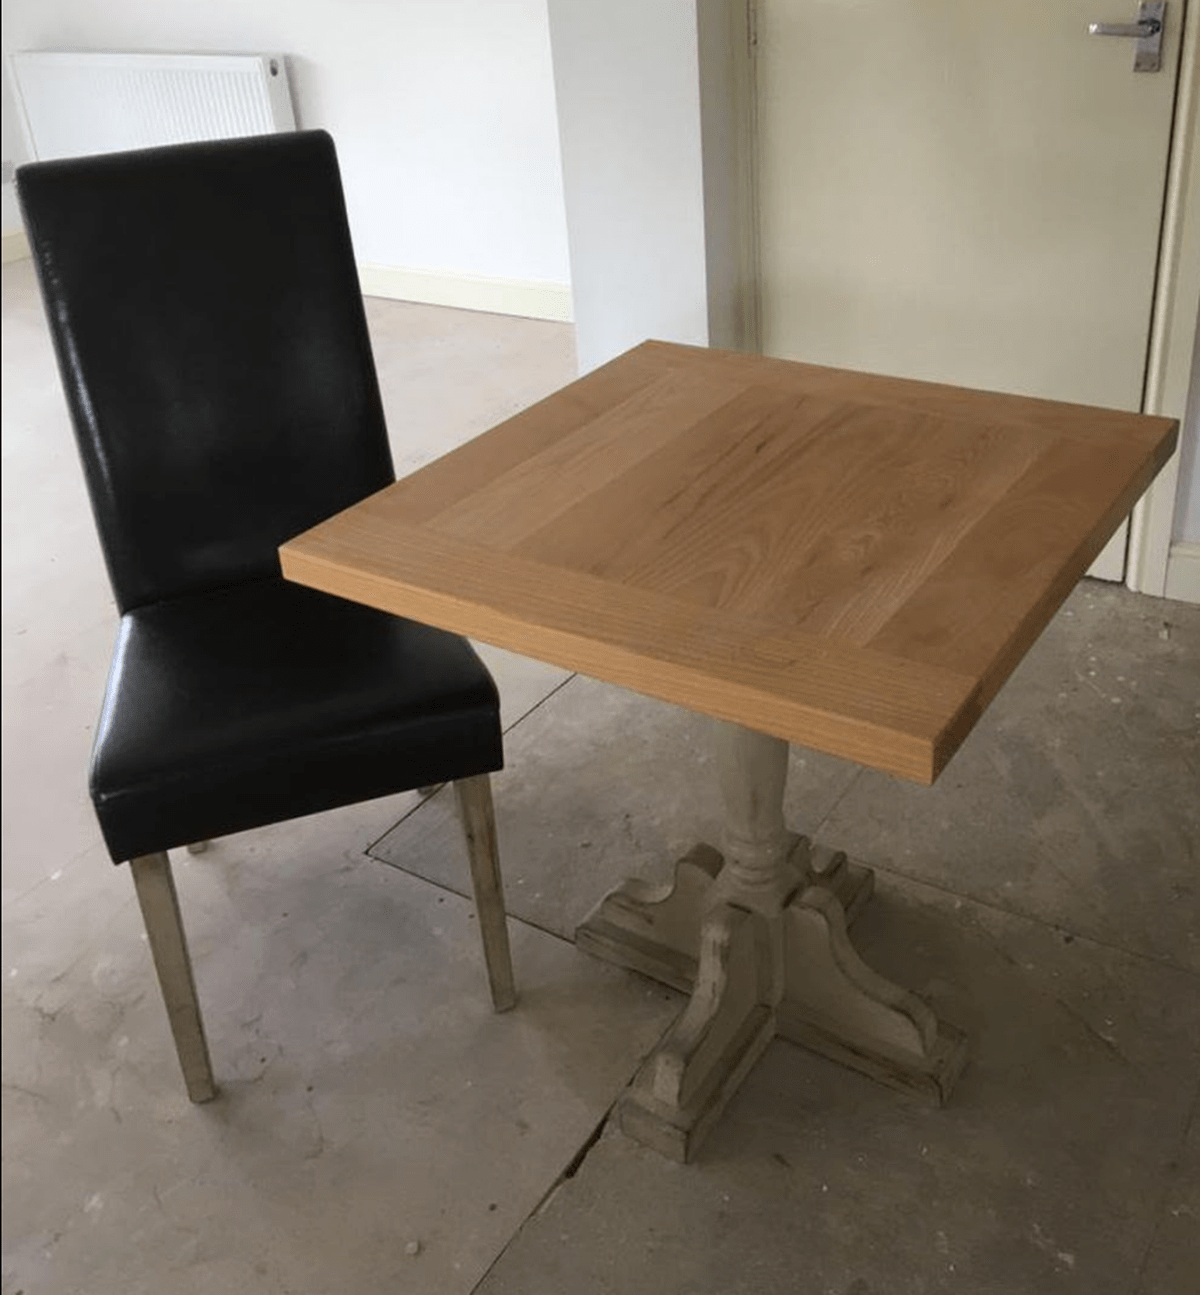 Restaurant Chairs For Sale Secondhand Chairs And Tables Cafe And Restaurant